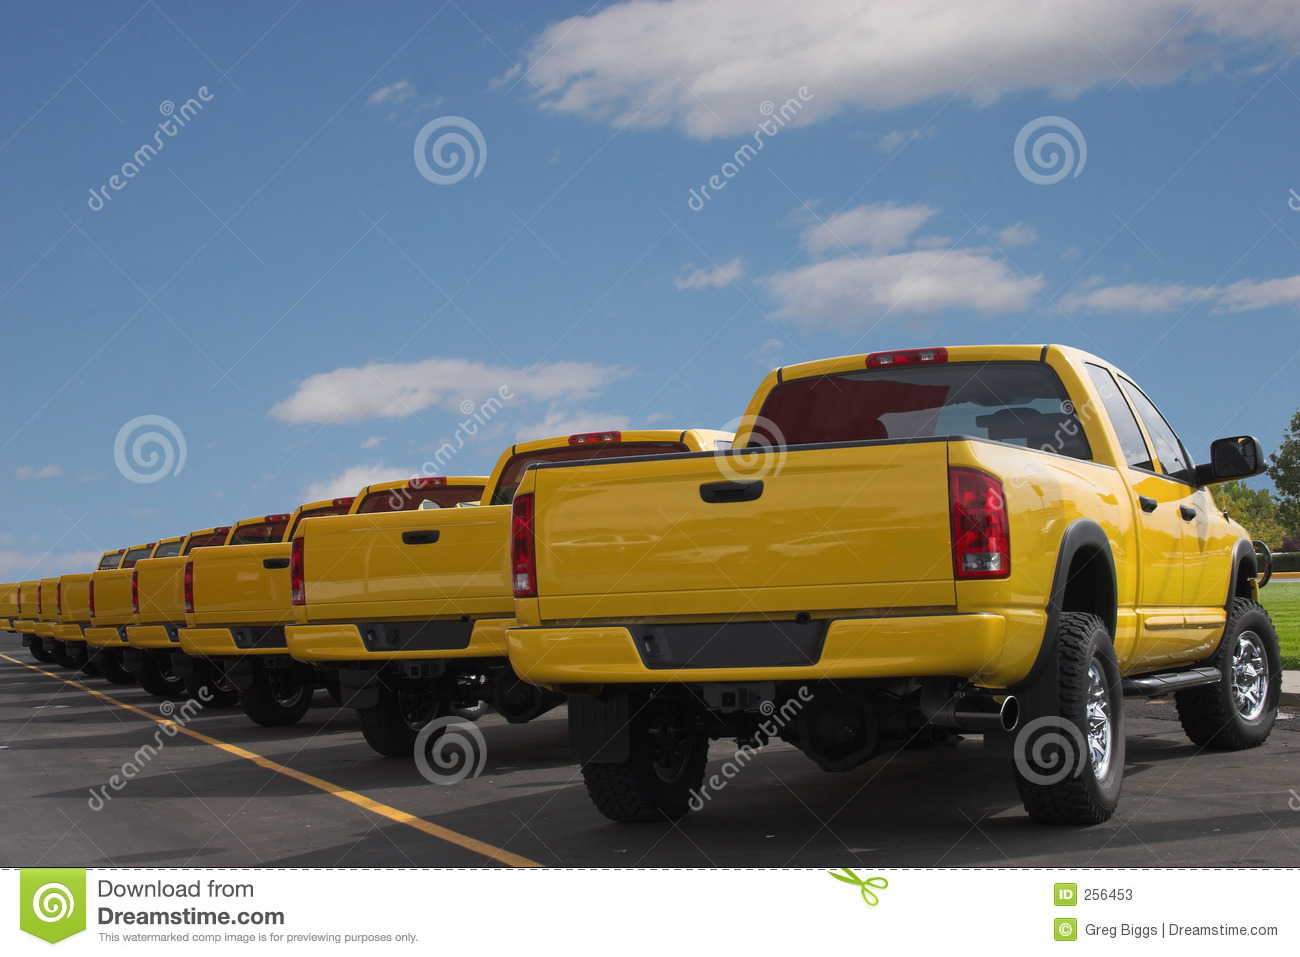 Used Cars For Sale Stock Image Image Of Cars License: Yellow Pickup Trucks Stock Image. Image Of Alert, Cars